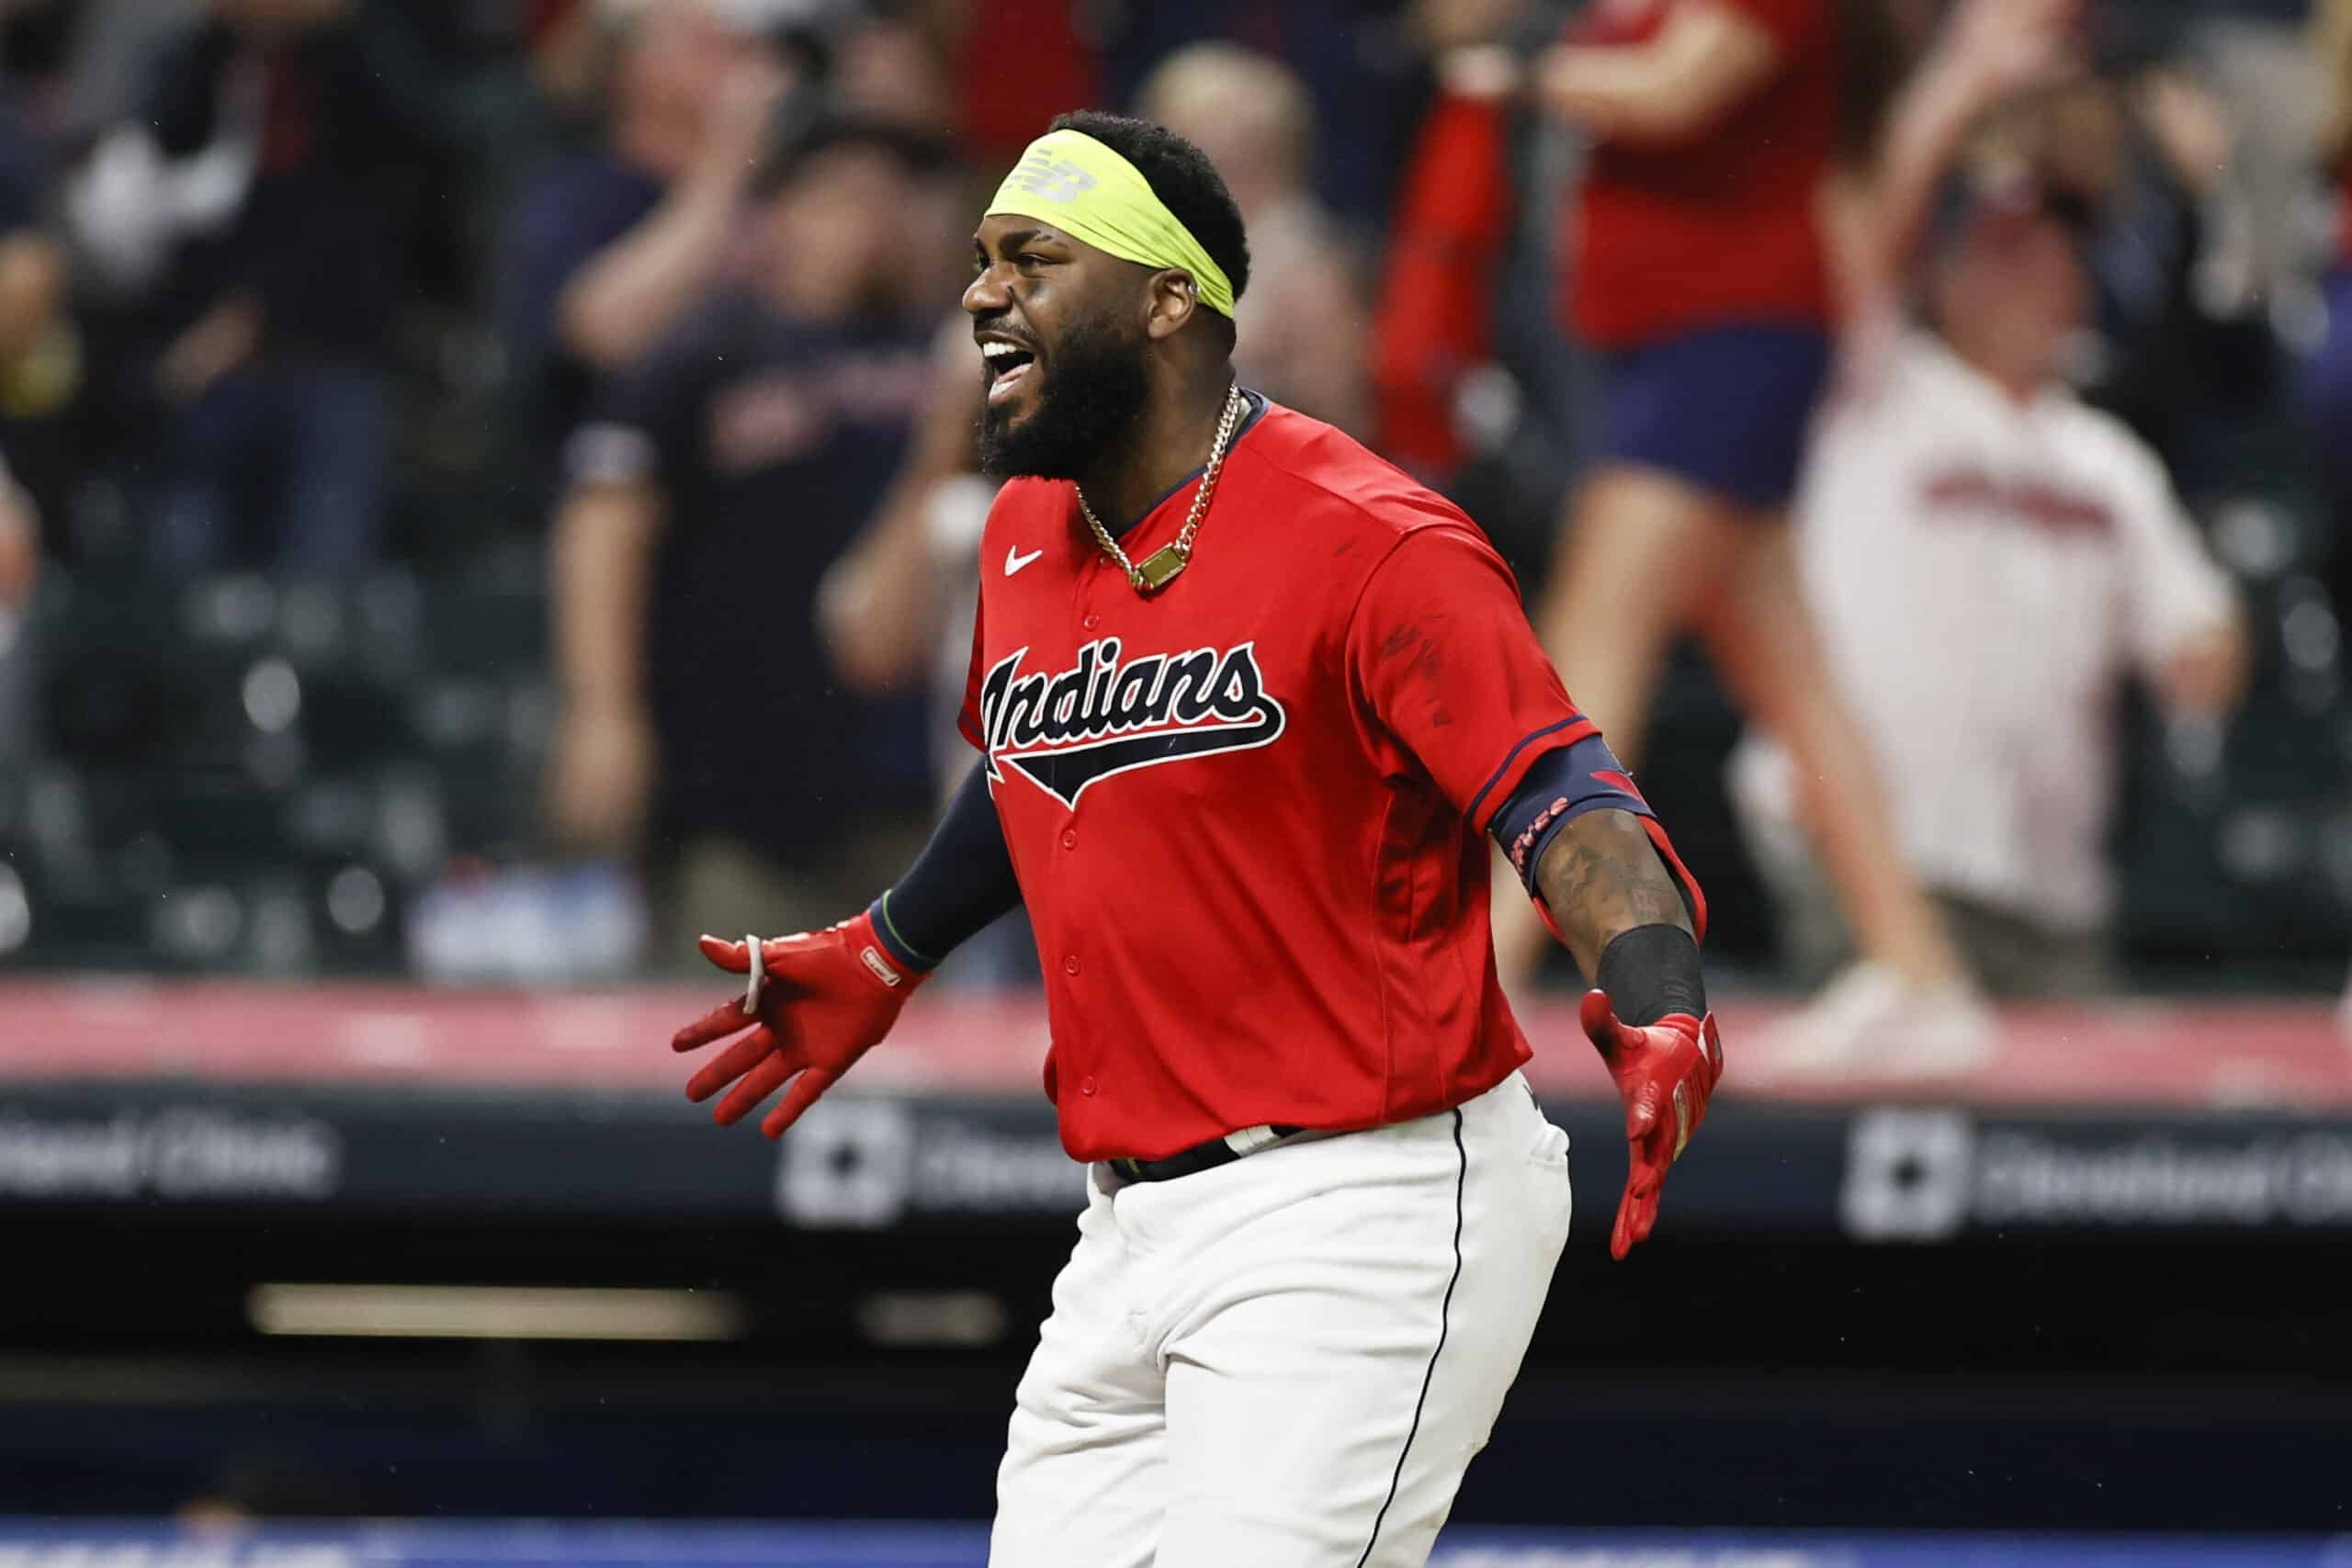 Franmil Reyes #32 of the Cleveland Indians celebrates his game-winning, three-run home run off relief pitcher Greg Holland of the Kansas City Royals in the ninth inning at Progressive Field on July 08, 2021 in Cleveland, Ohio. The Indians won 7-4.